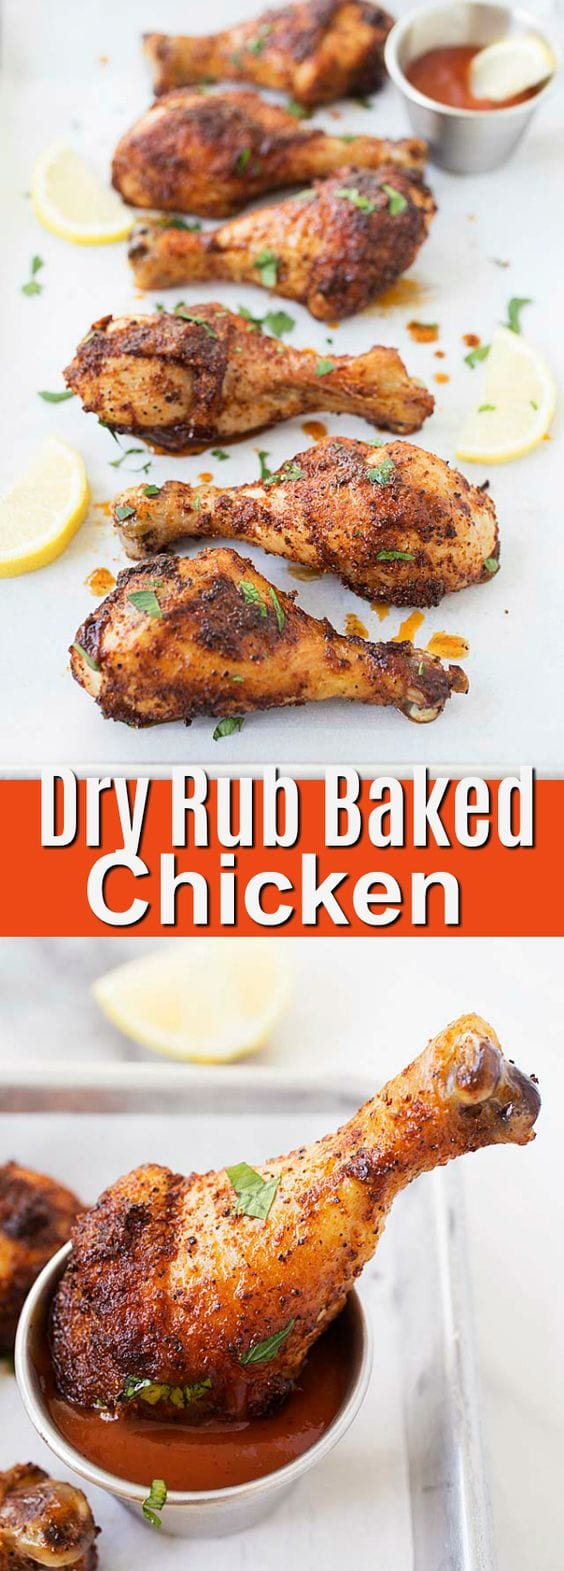 Dry Rub Baked Chicken - the easiest and quickest oven-baked chicken drumsticks. Just coat the chicken with dry rub, salt and dinner is done. Prep time is only 10 minutes!